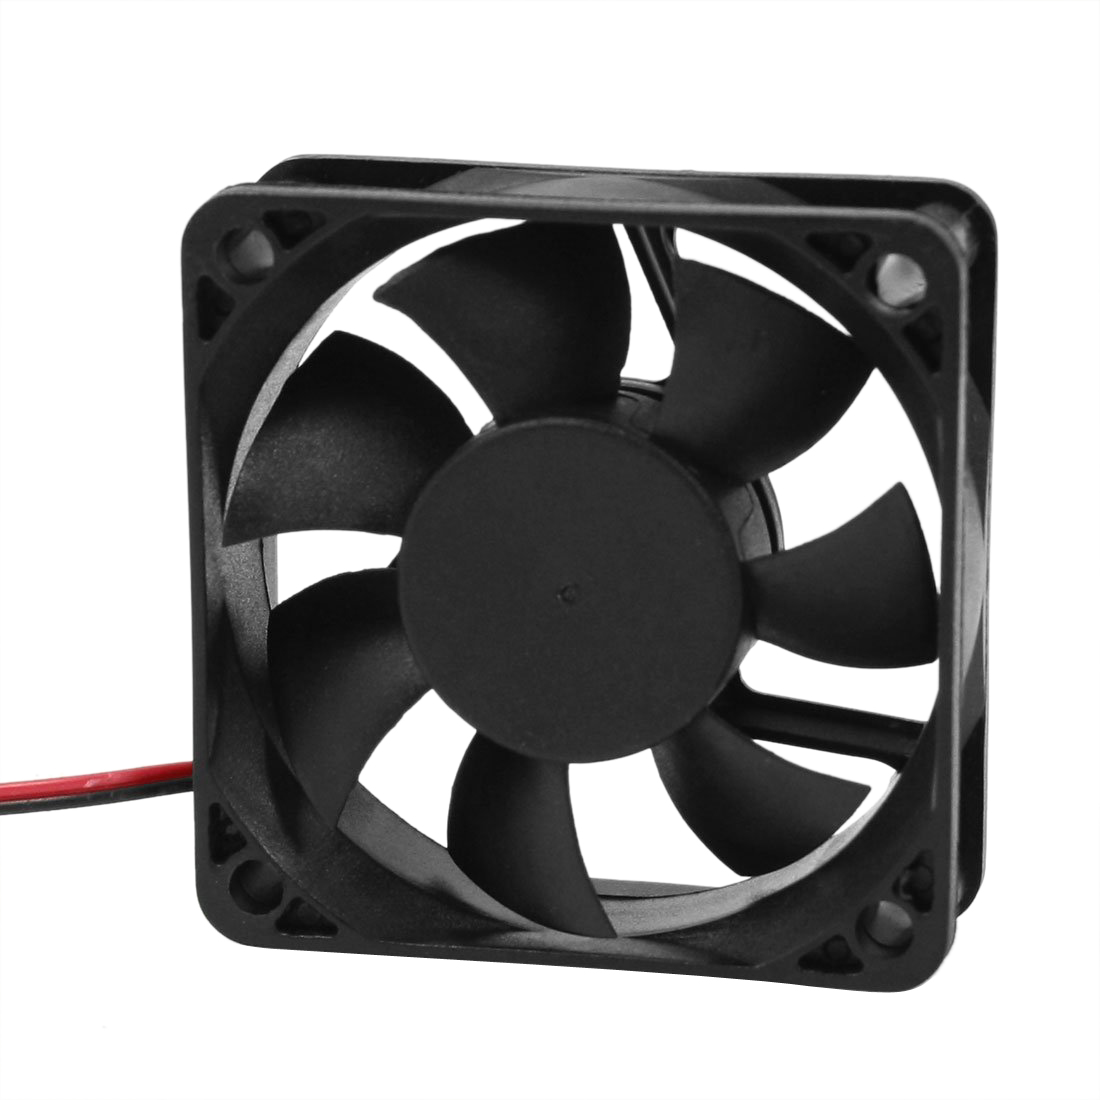 PROMOTION! Hot Sale DC 12V 2Pins Cooling Fan 60mm x 15mm for PC Computer Case CPU Cooler promotion 92mm x 25mm dc 12v 2pin 65 01cfm computer case cpu cooler cooling fan